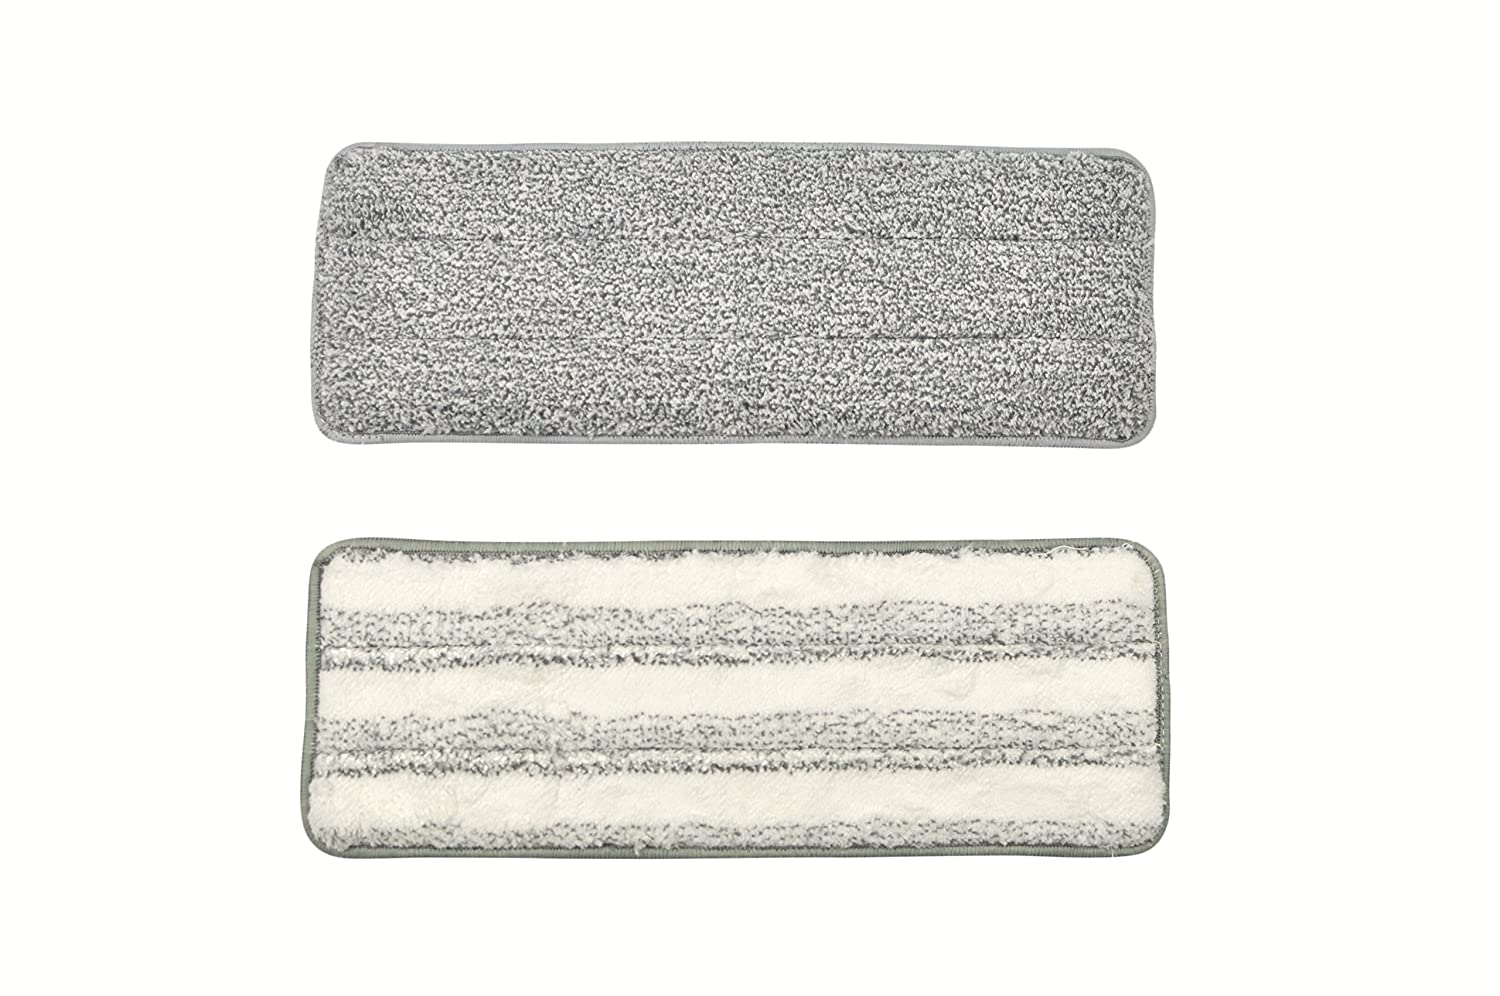 2pcs 1 Gray Flat Mop Pads Compatible with Oshang Flat Squeeze Mop and Bucket 1 White